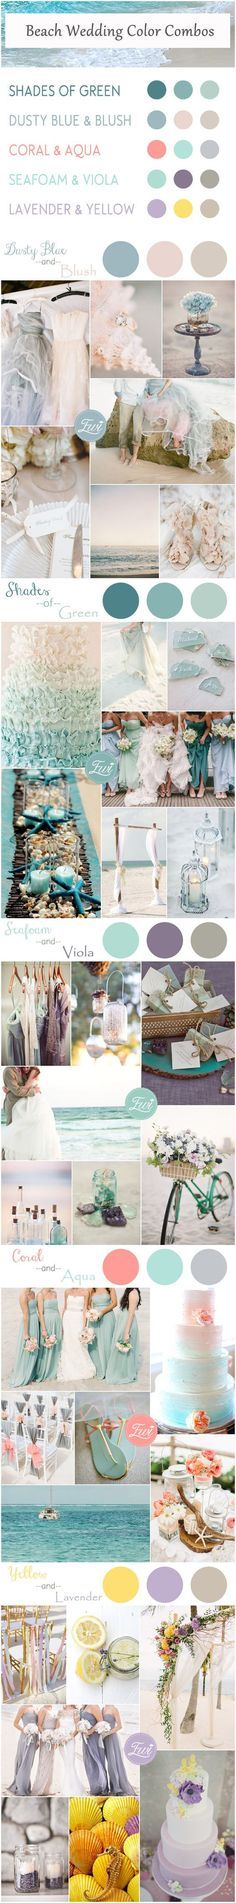 Beach Wedding Color